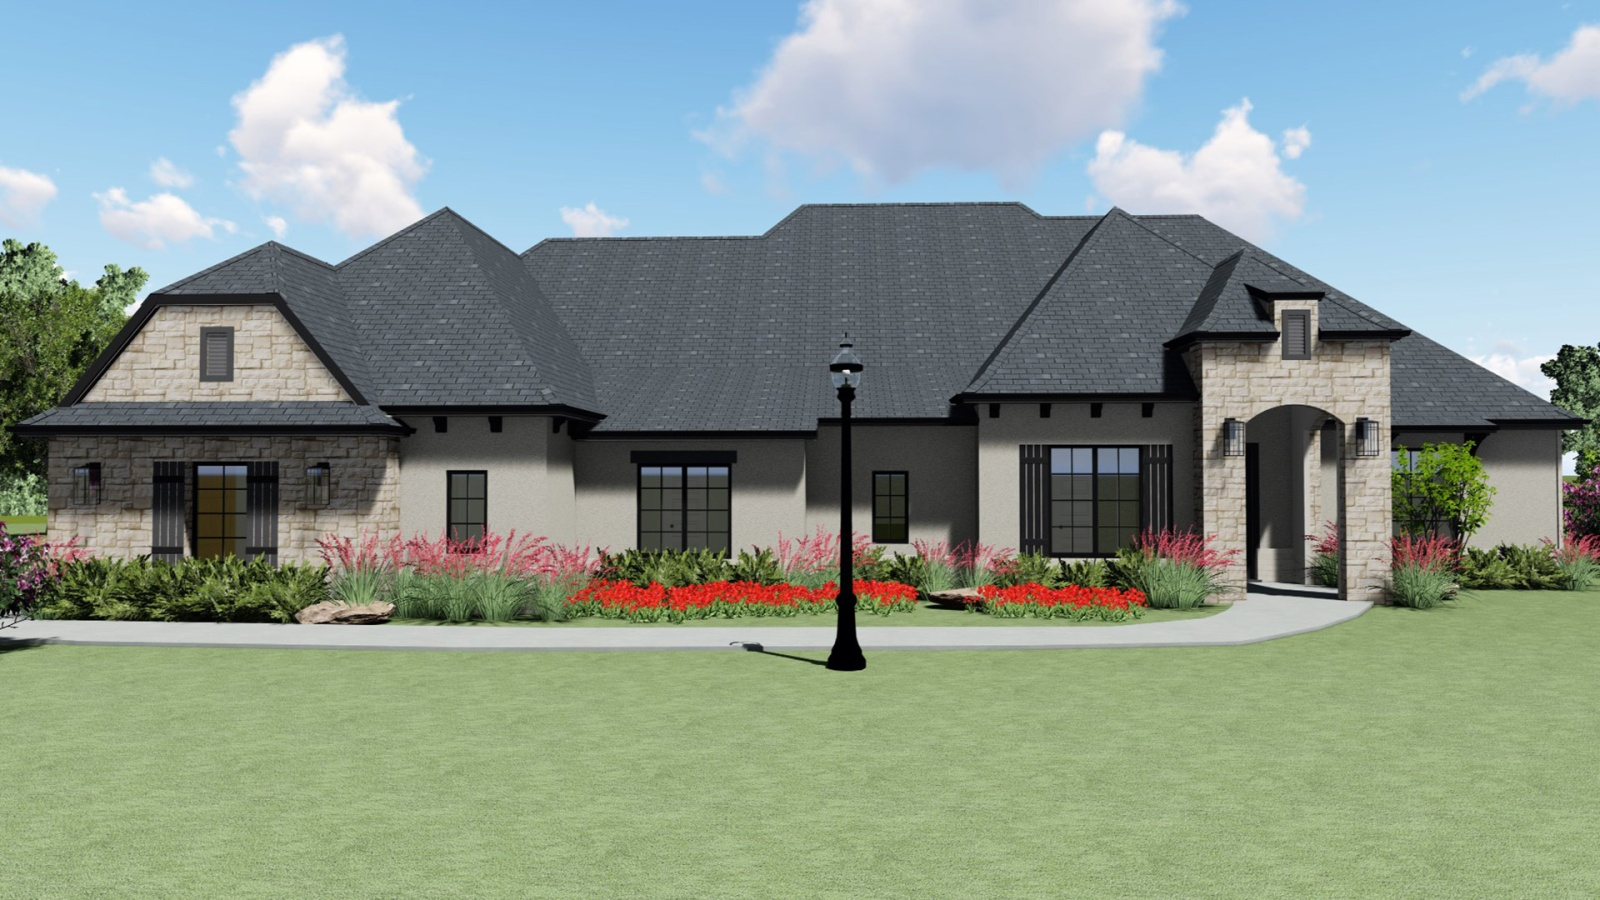 3 Bedrooms Bedrooms, ,3 BathroomsBathrooms,Custom Home,Home Plans,1020